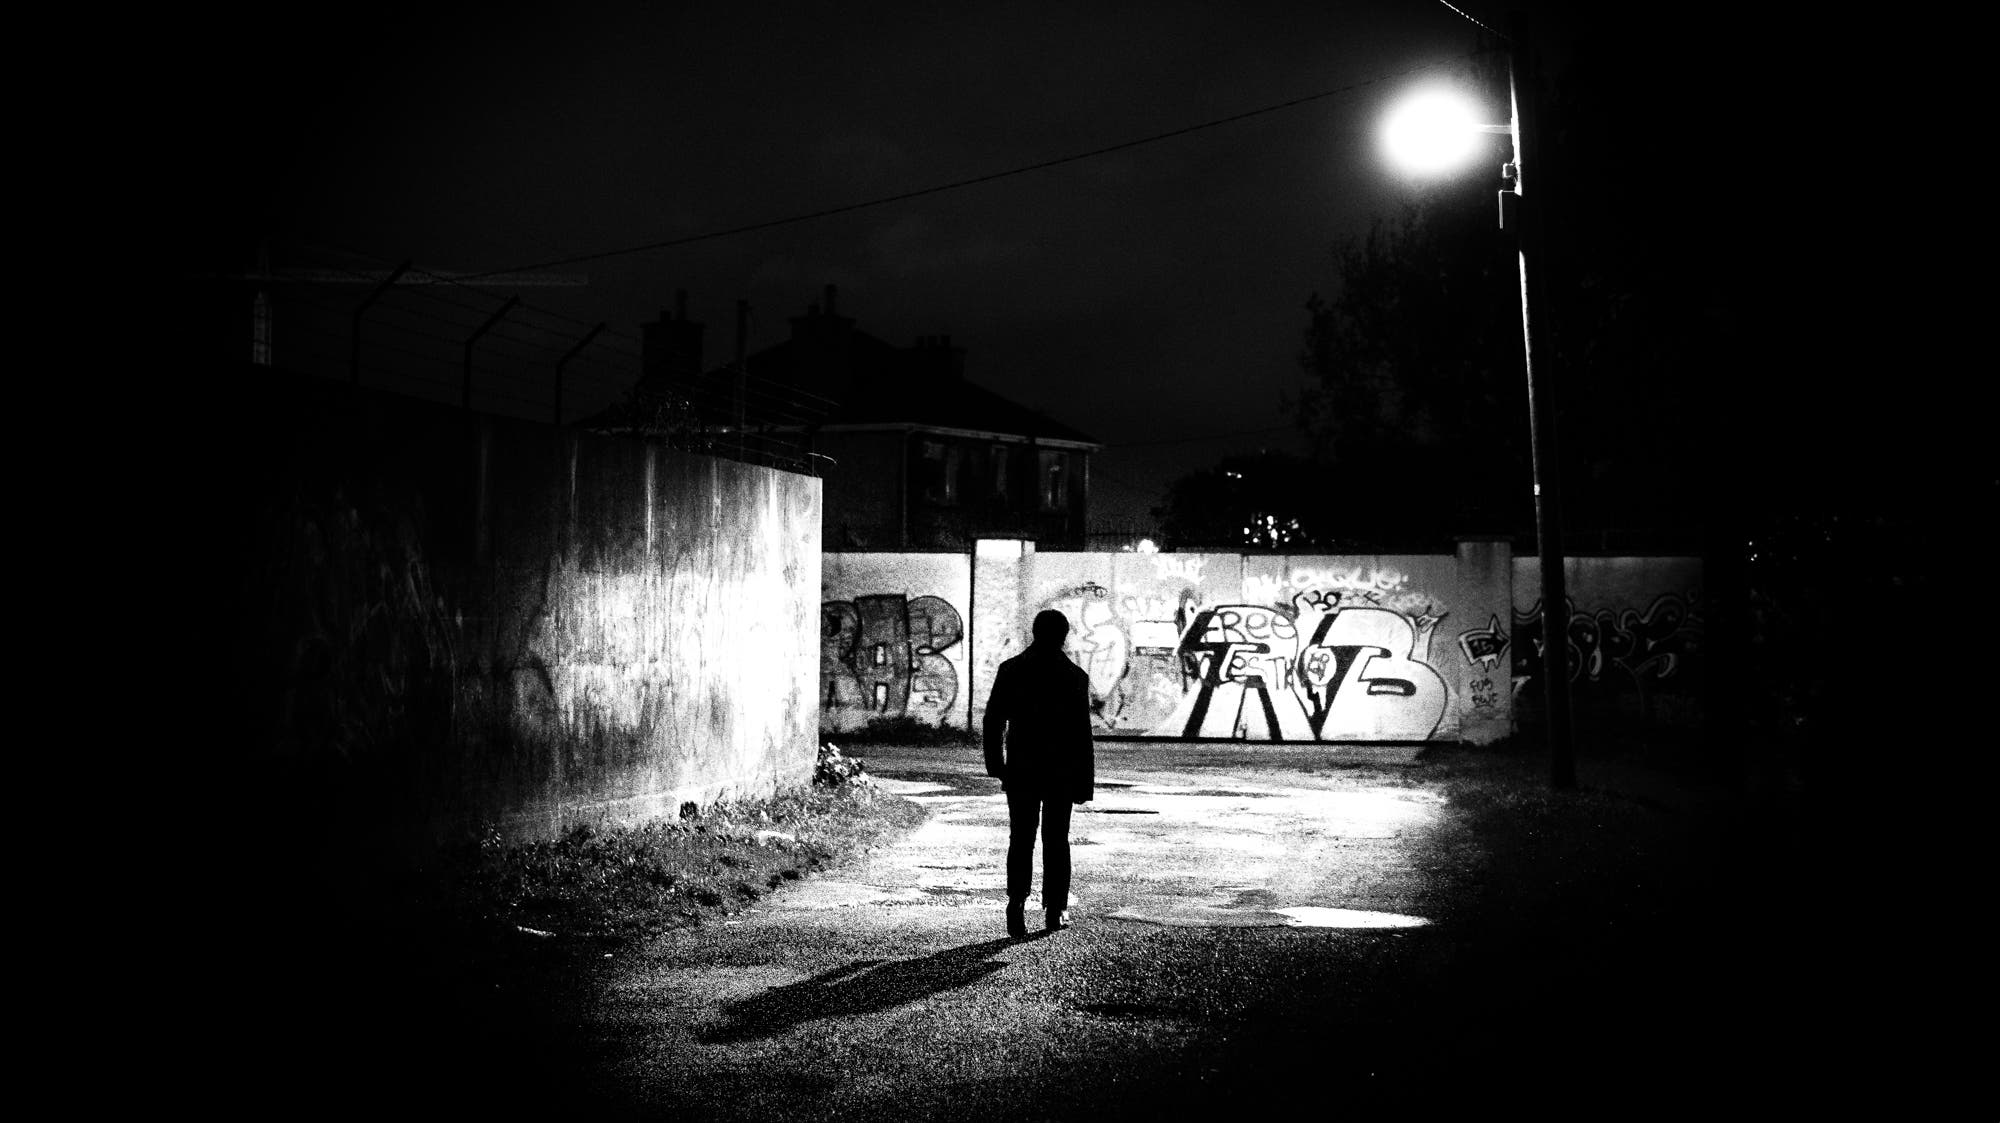 giuseppe milo 39 s faceless combines street photography and silhouettes. Black Bedroom Furniture Sets. Home Design Ideas